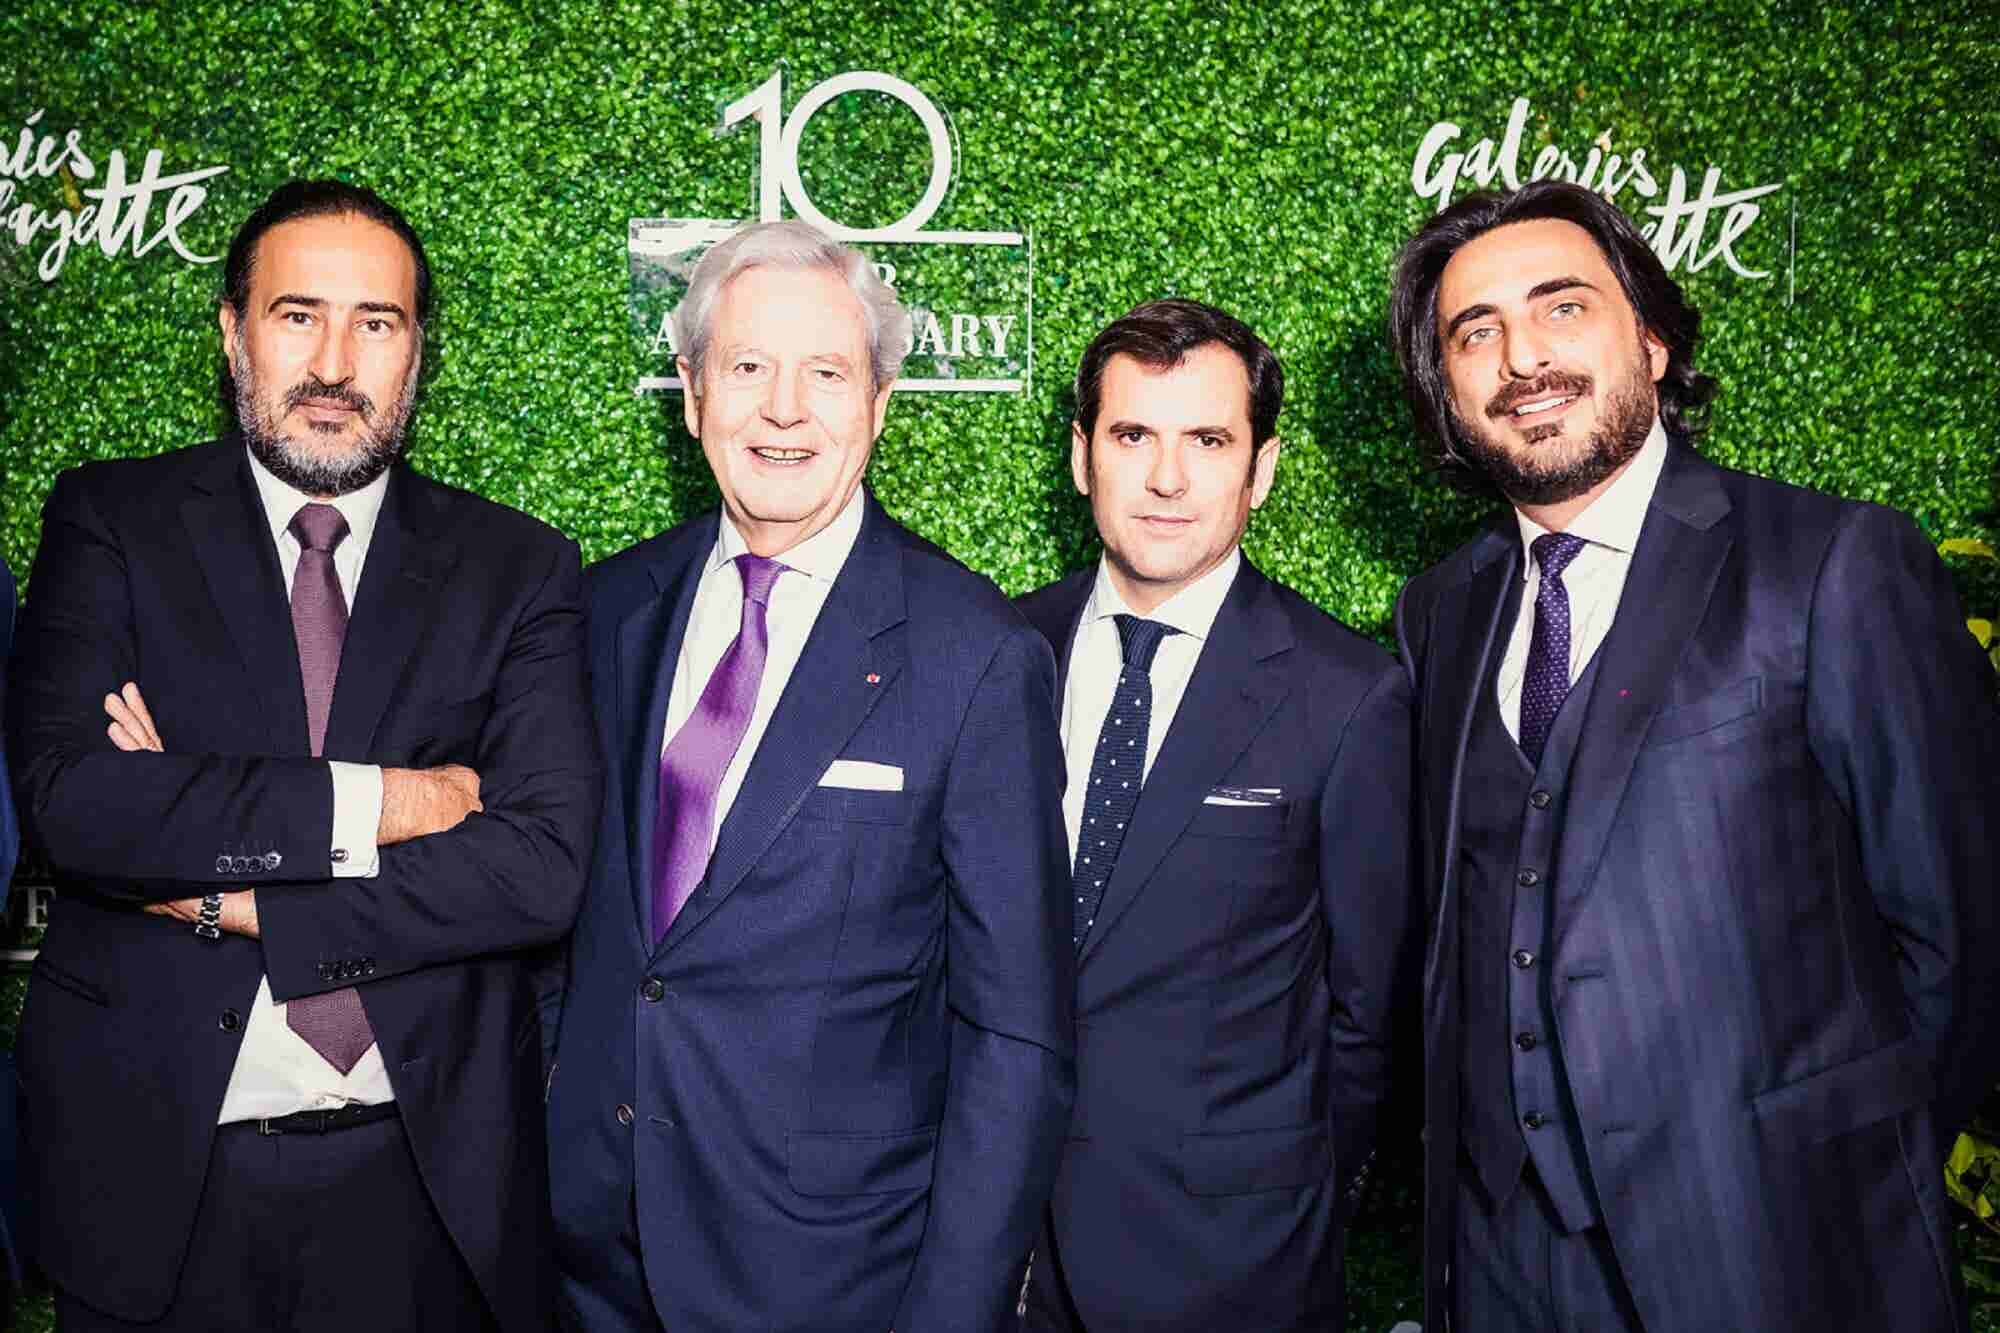 Taking Charge Of The Future: Galeries Lafayette CEO Nicolas Houzé